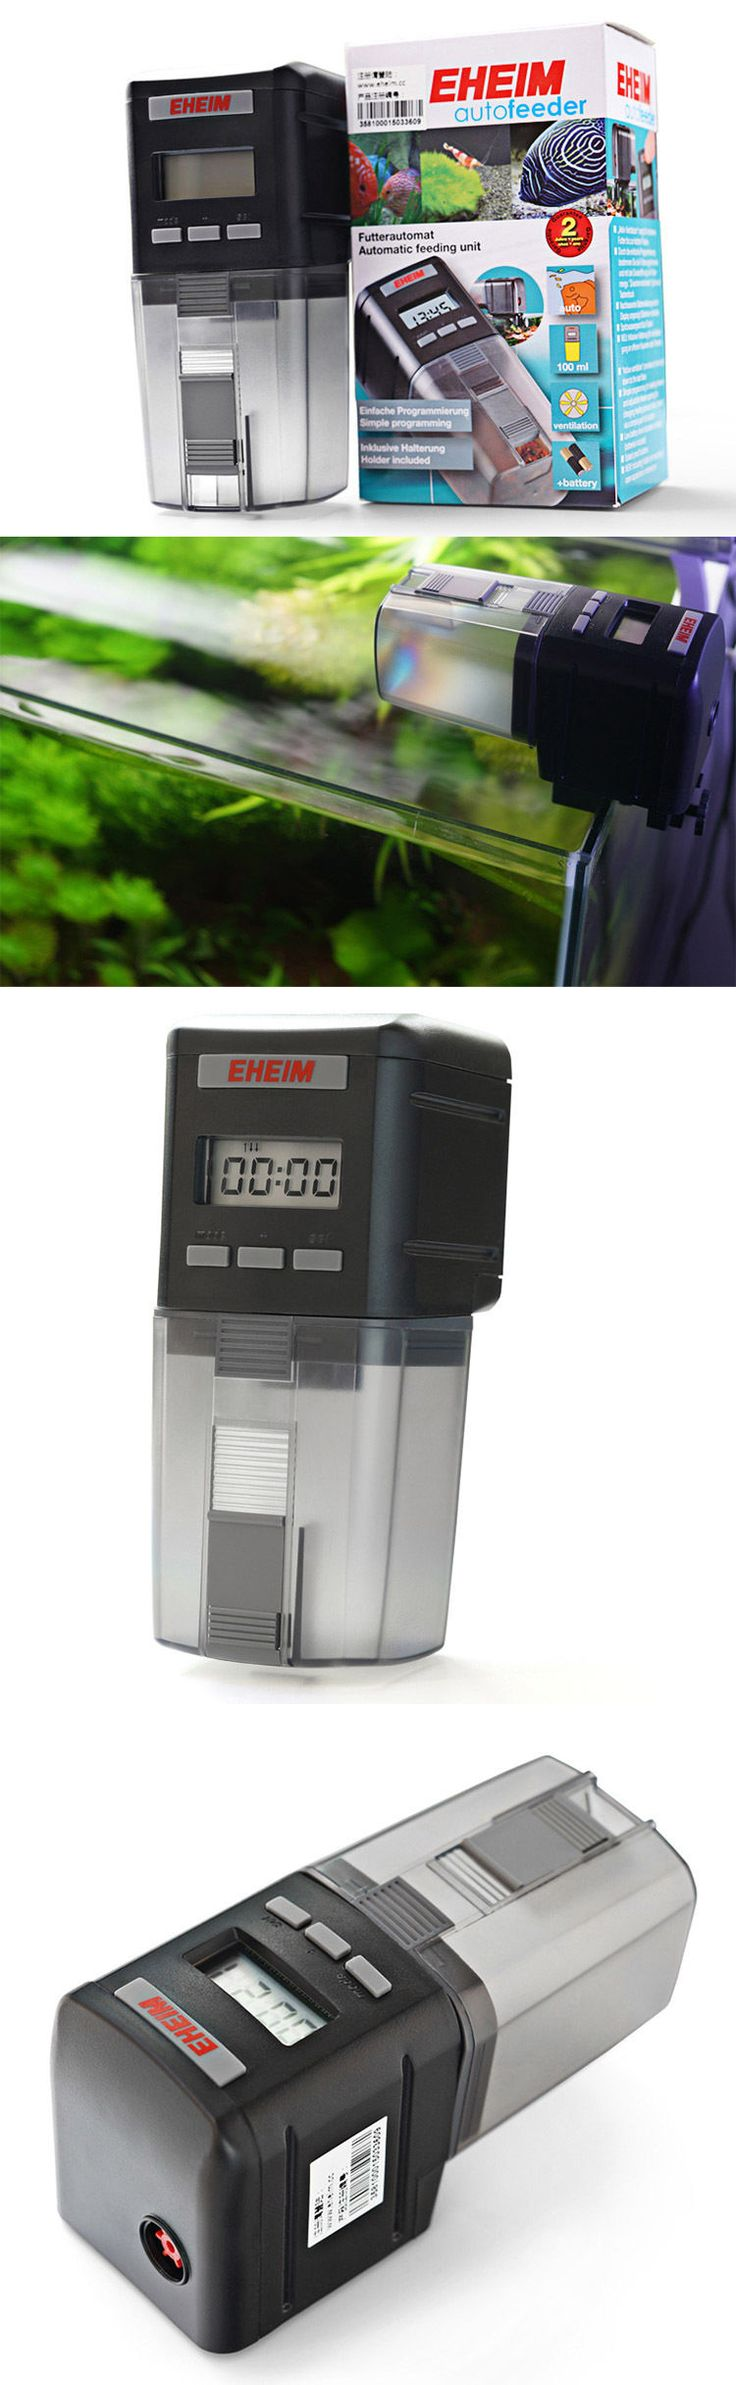 batteries dispenser helpful included auto turtle for pond tank customer feeders rated eheim food pcr programmable feeder reviews automatic fish best aquarium in